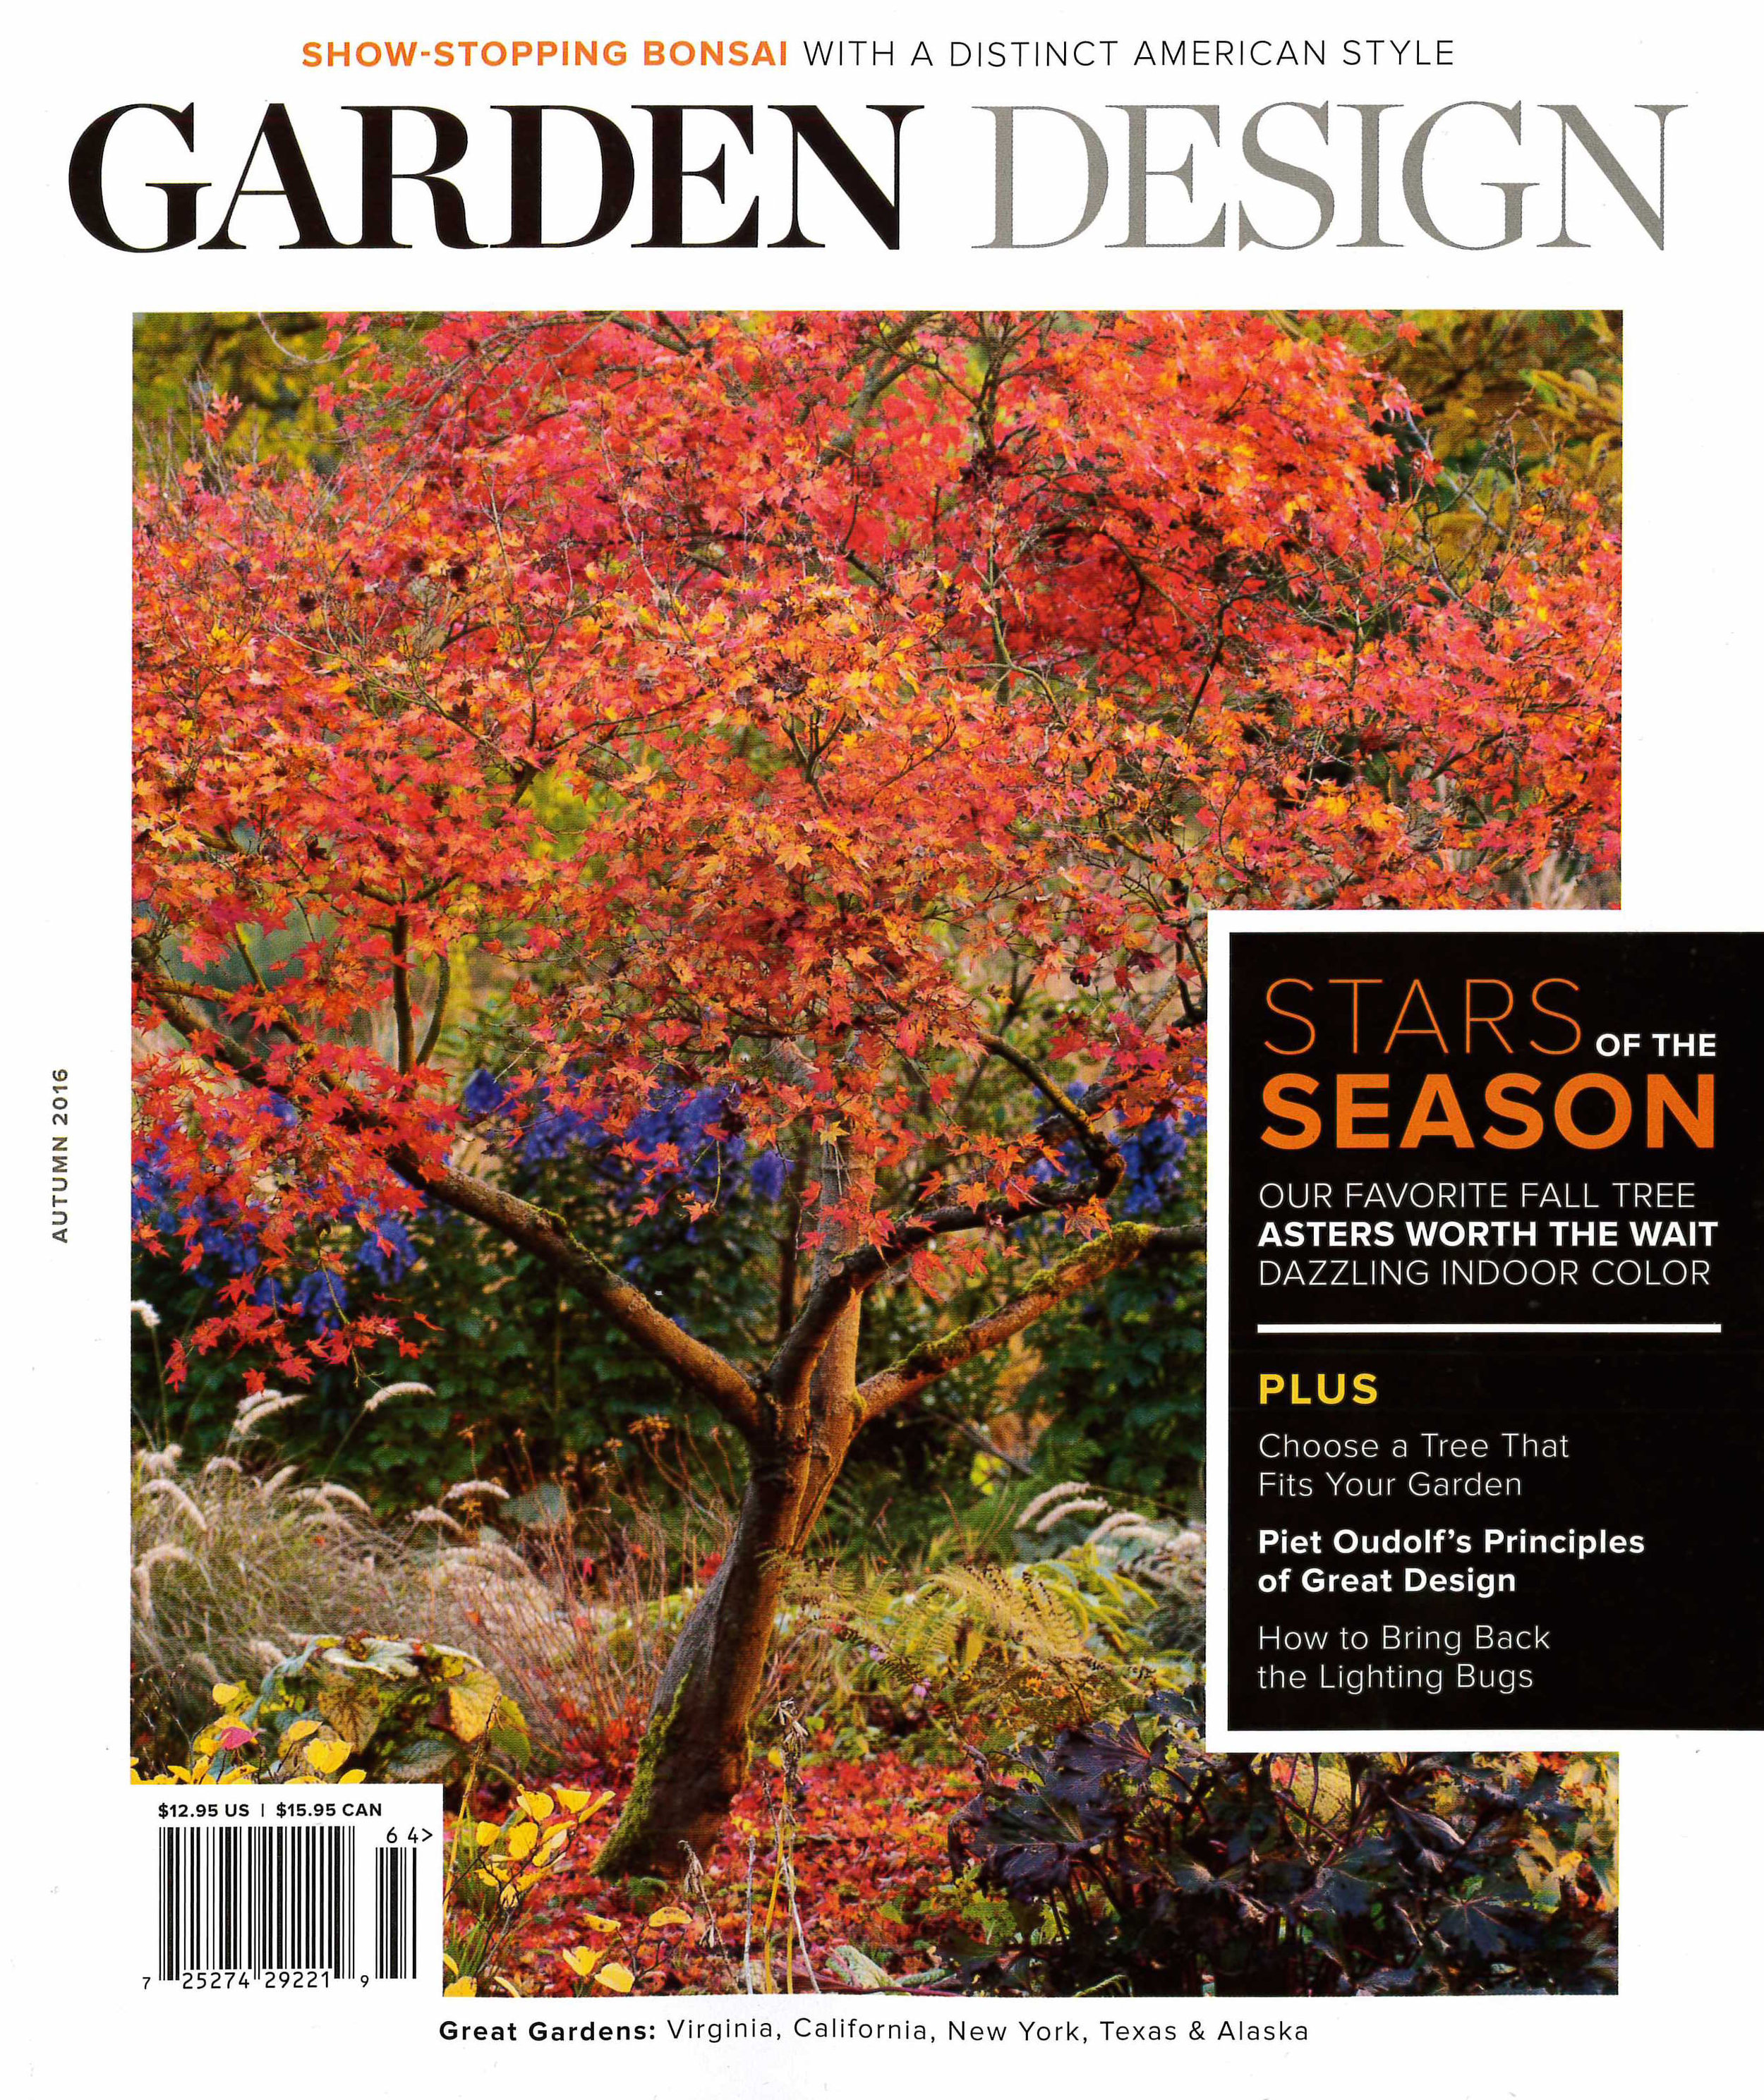 GardenDesign-2016-fall-cover.jpg